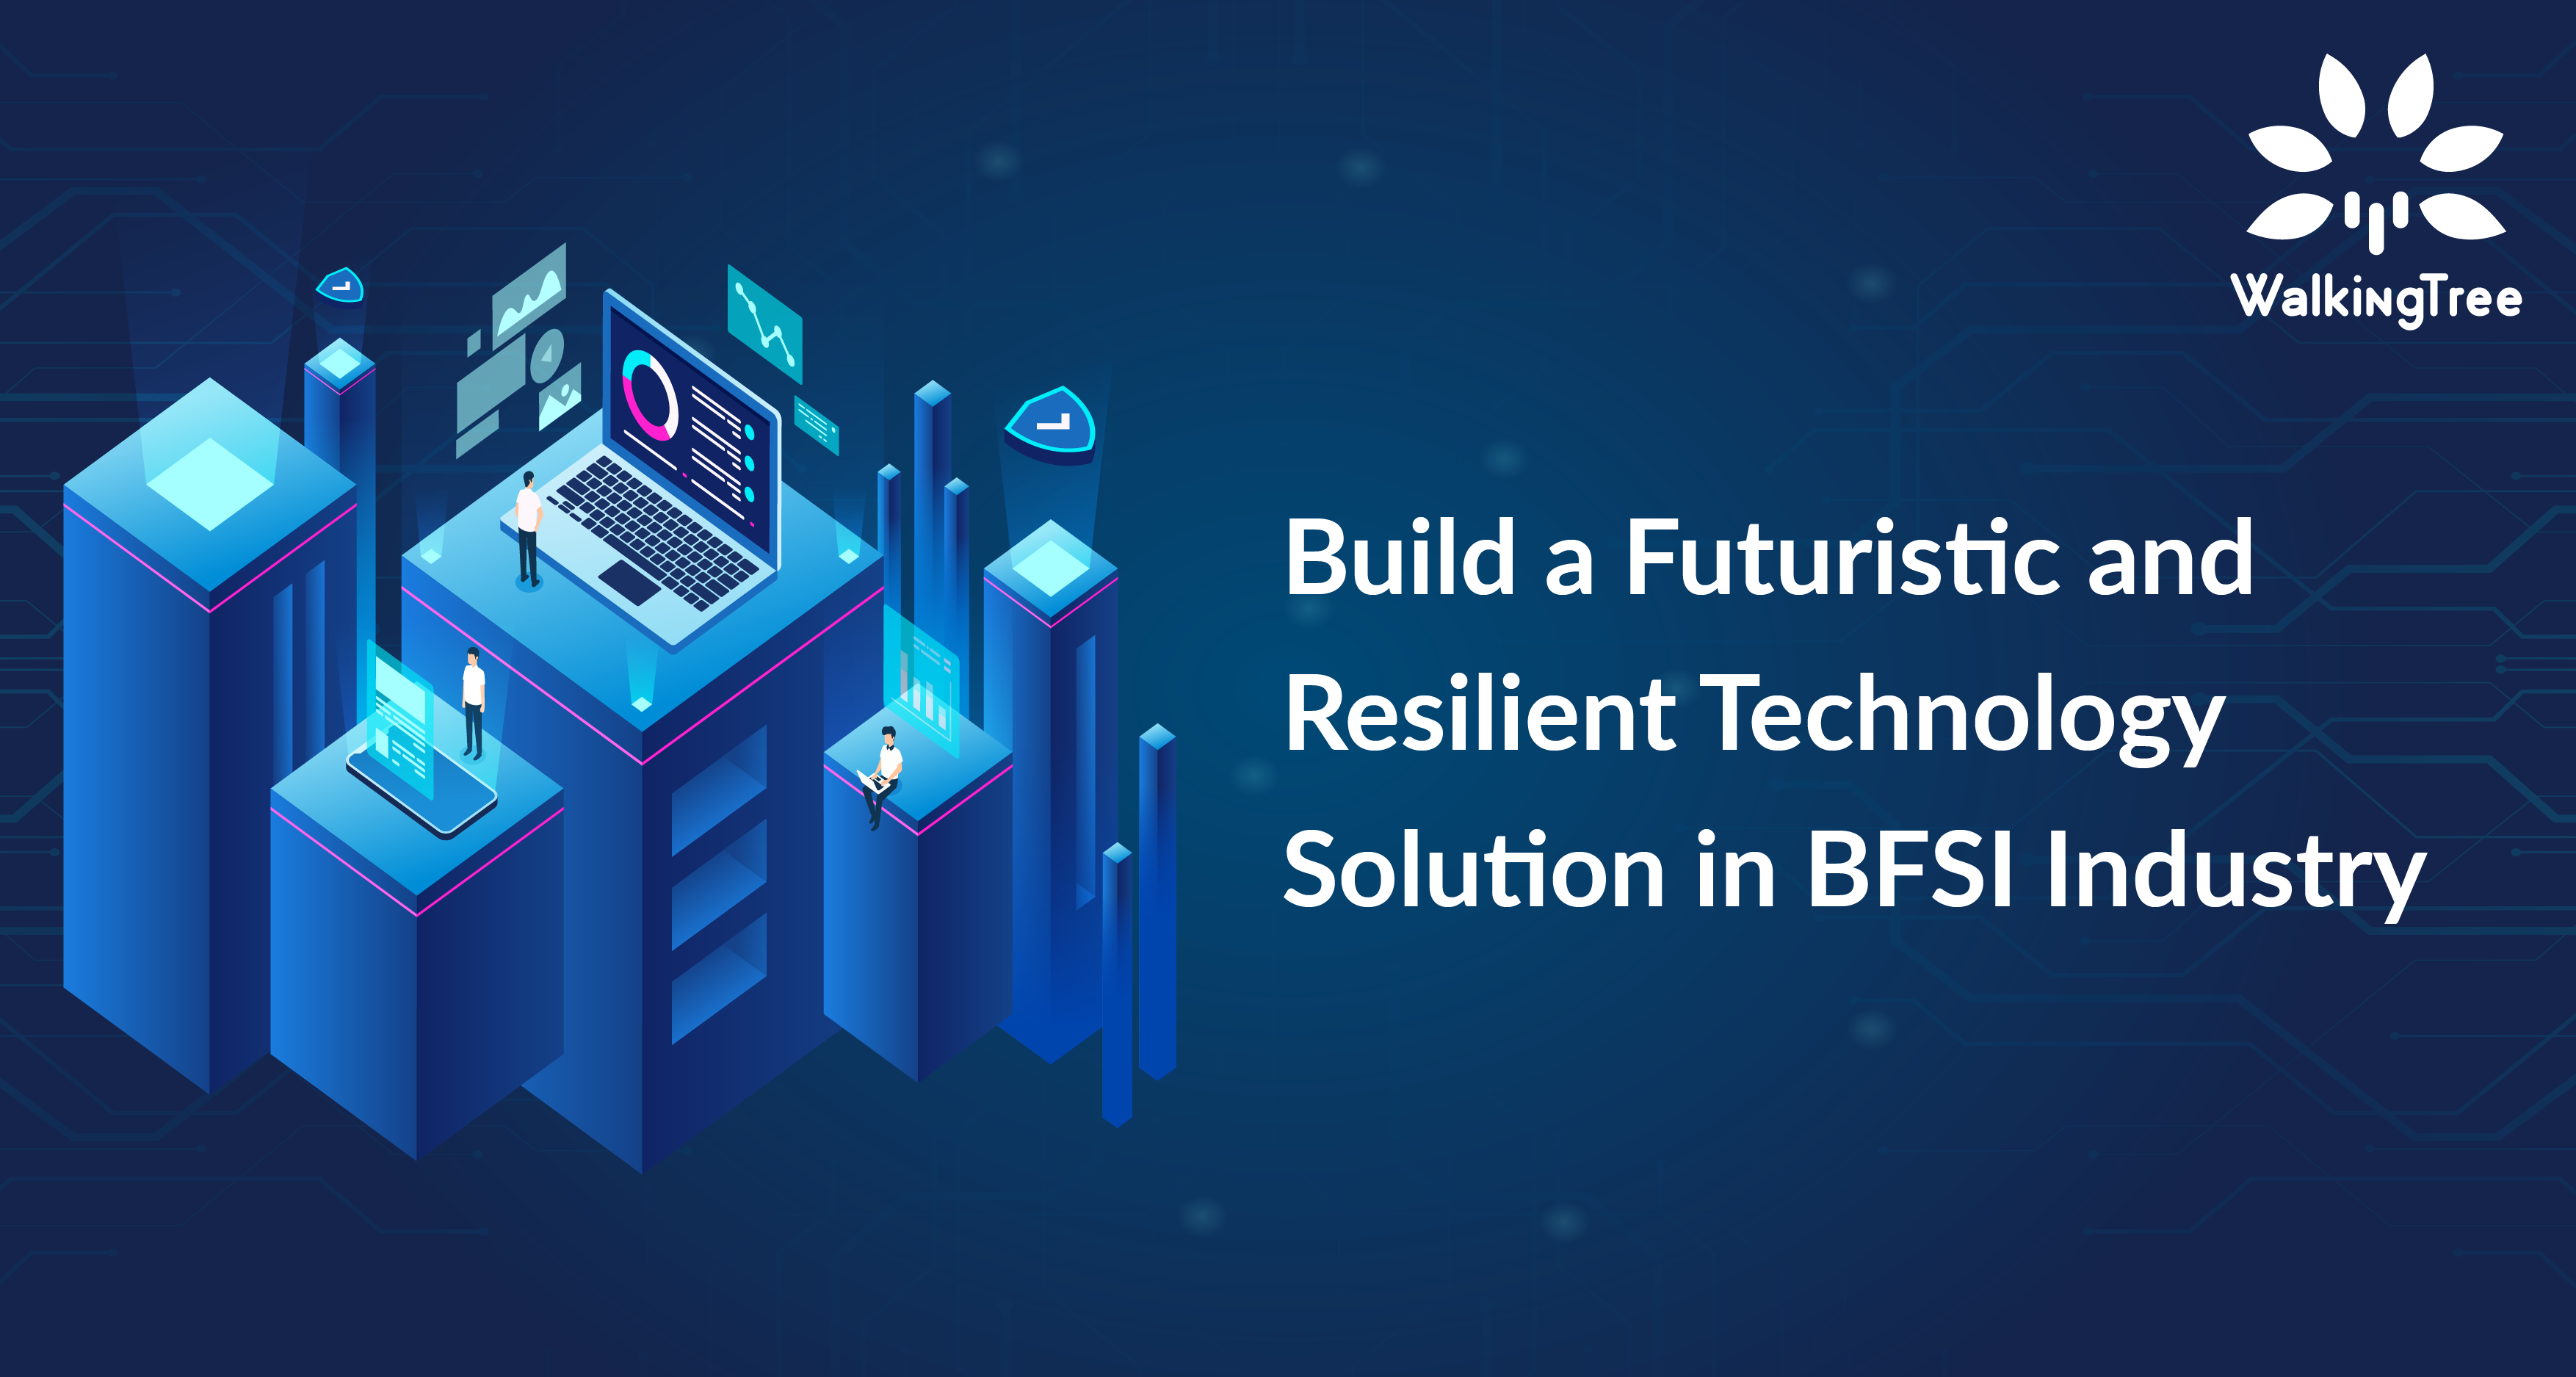 Build a Futuristic and Resilient Technology Solution in BFSI Industry - WalkingTree Blog